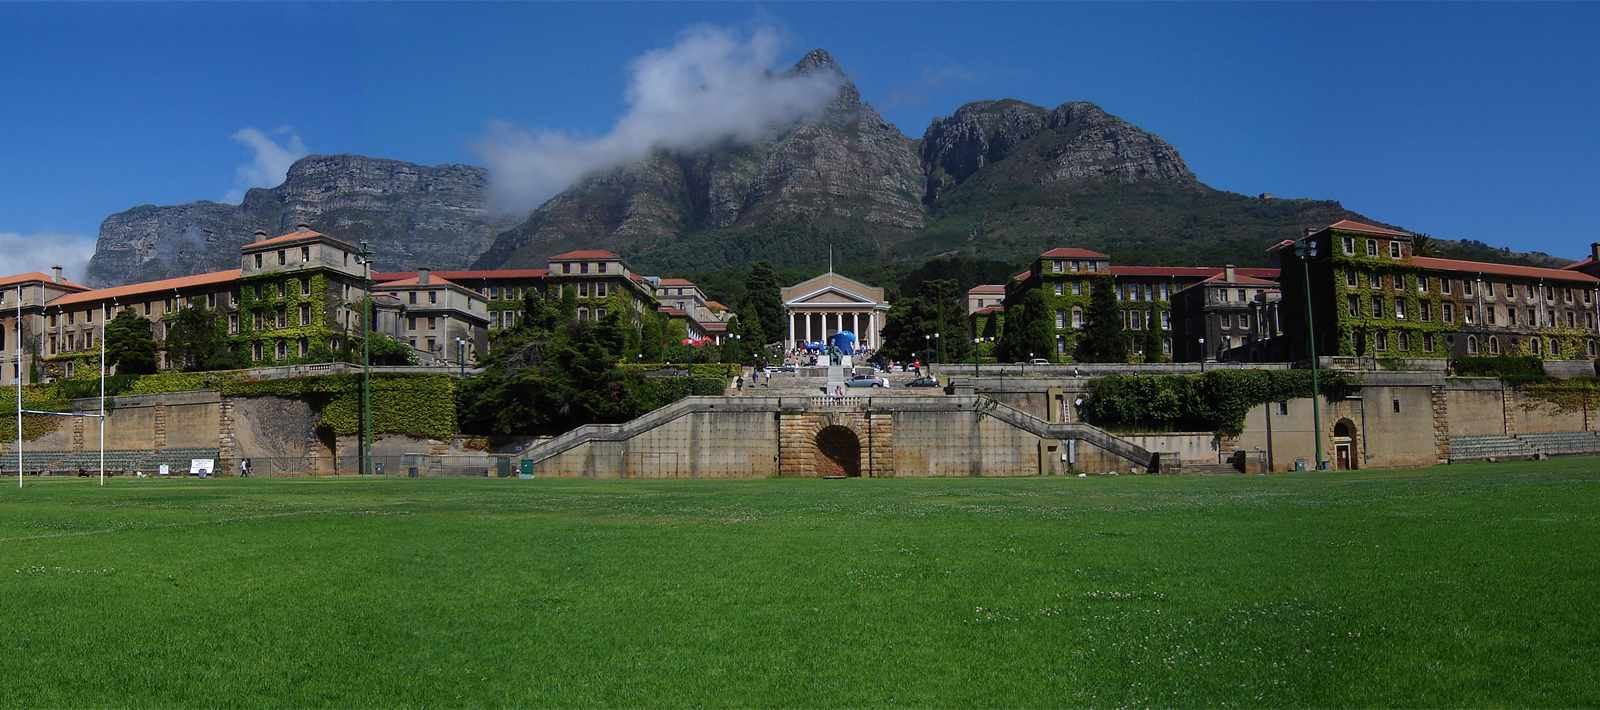 The University of Cape Town is an Associated University of the LafargeHolcim Foundation …